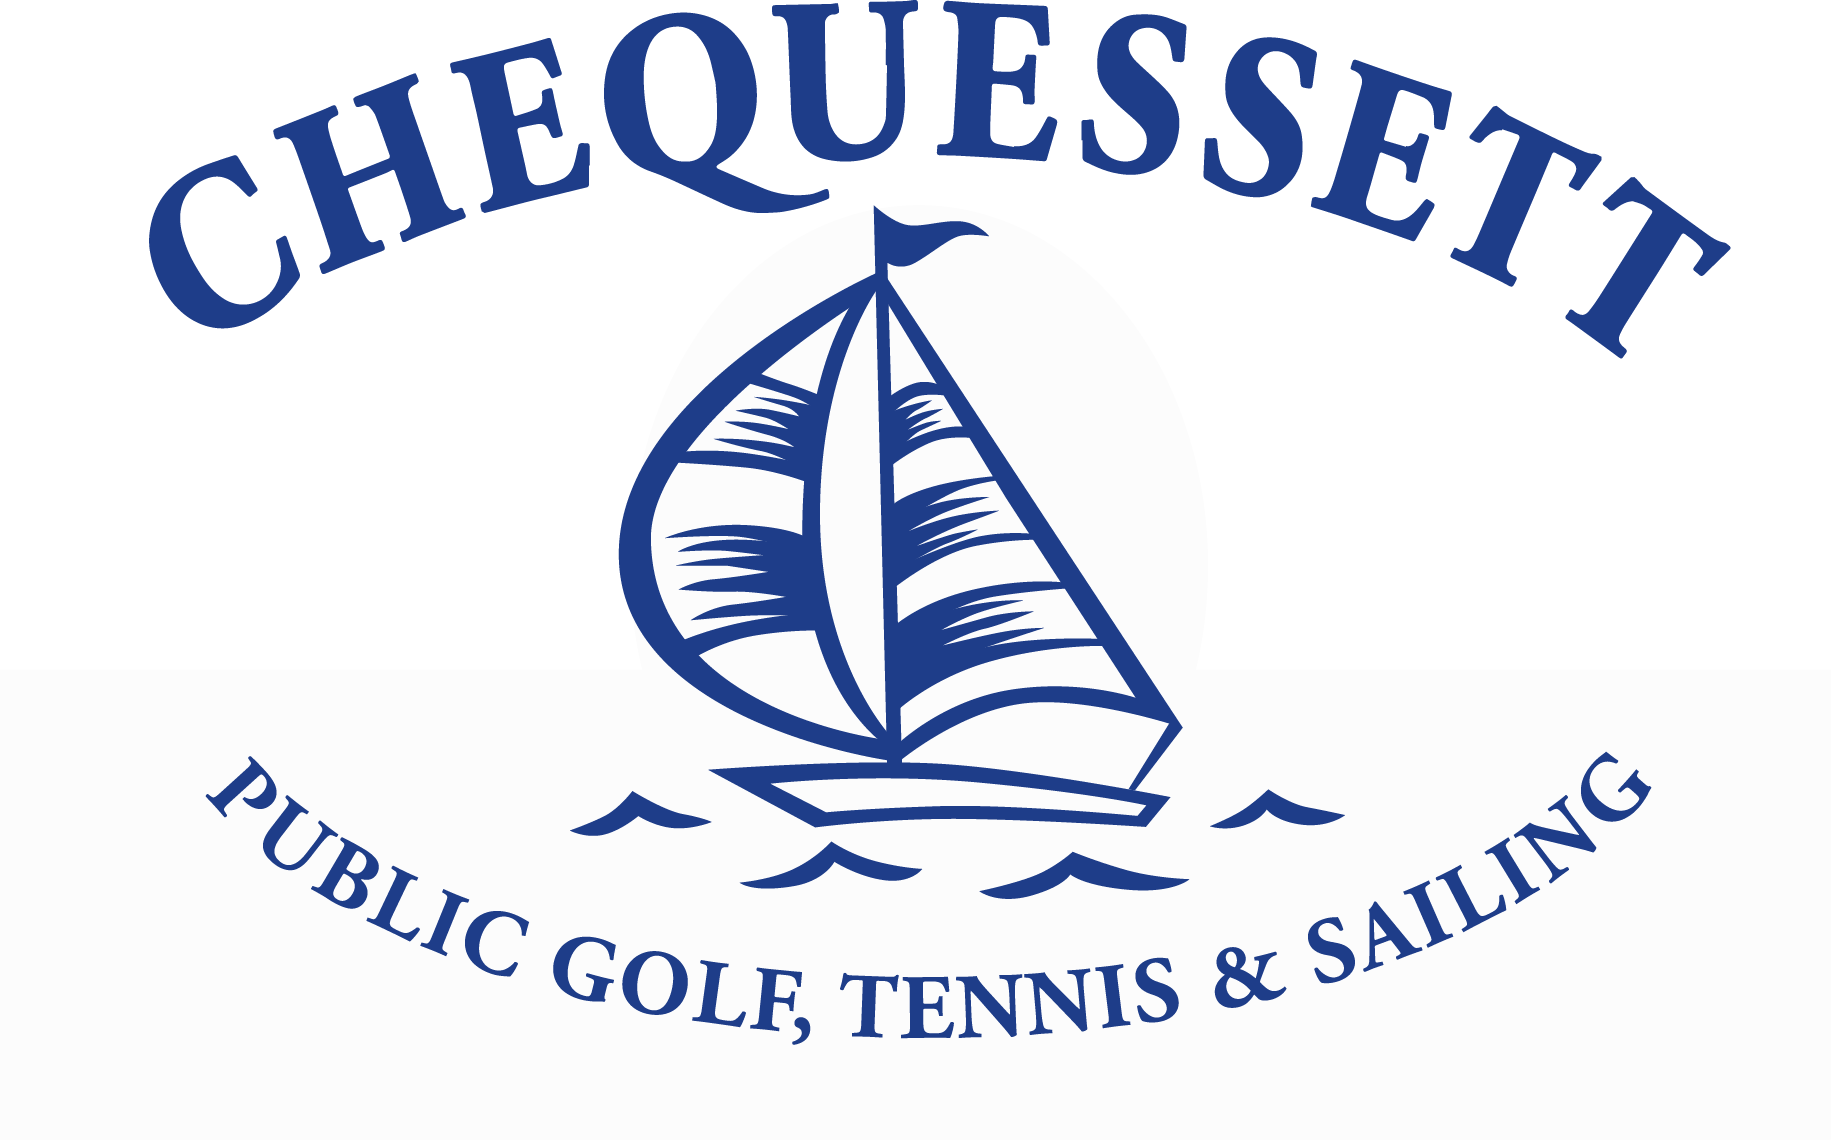 Chequessett - Public Golf, Tennis & Sailing